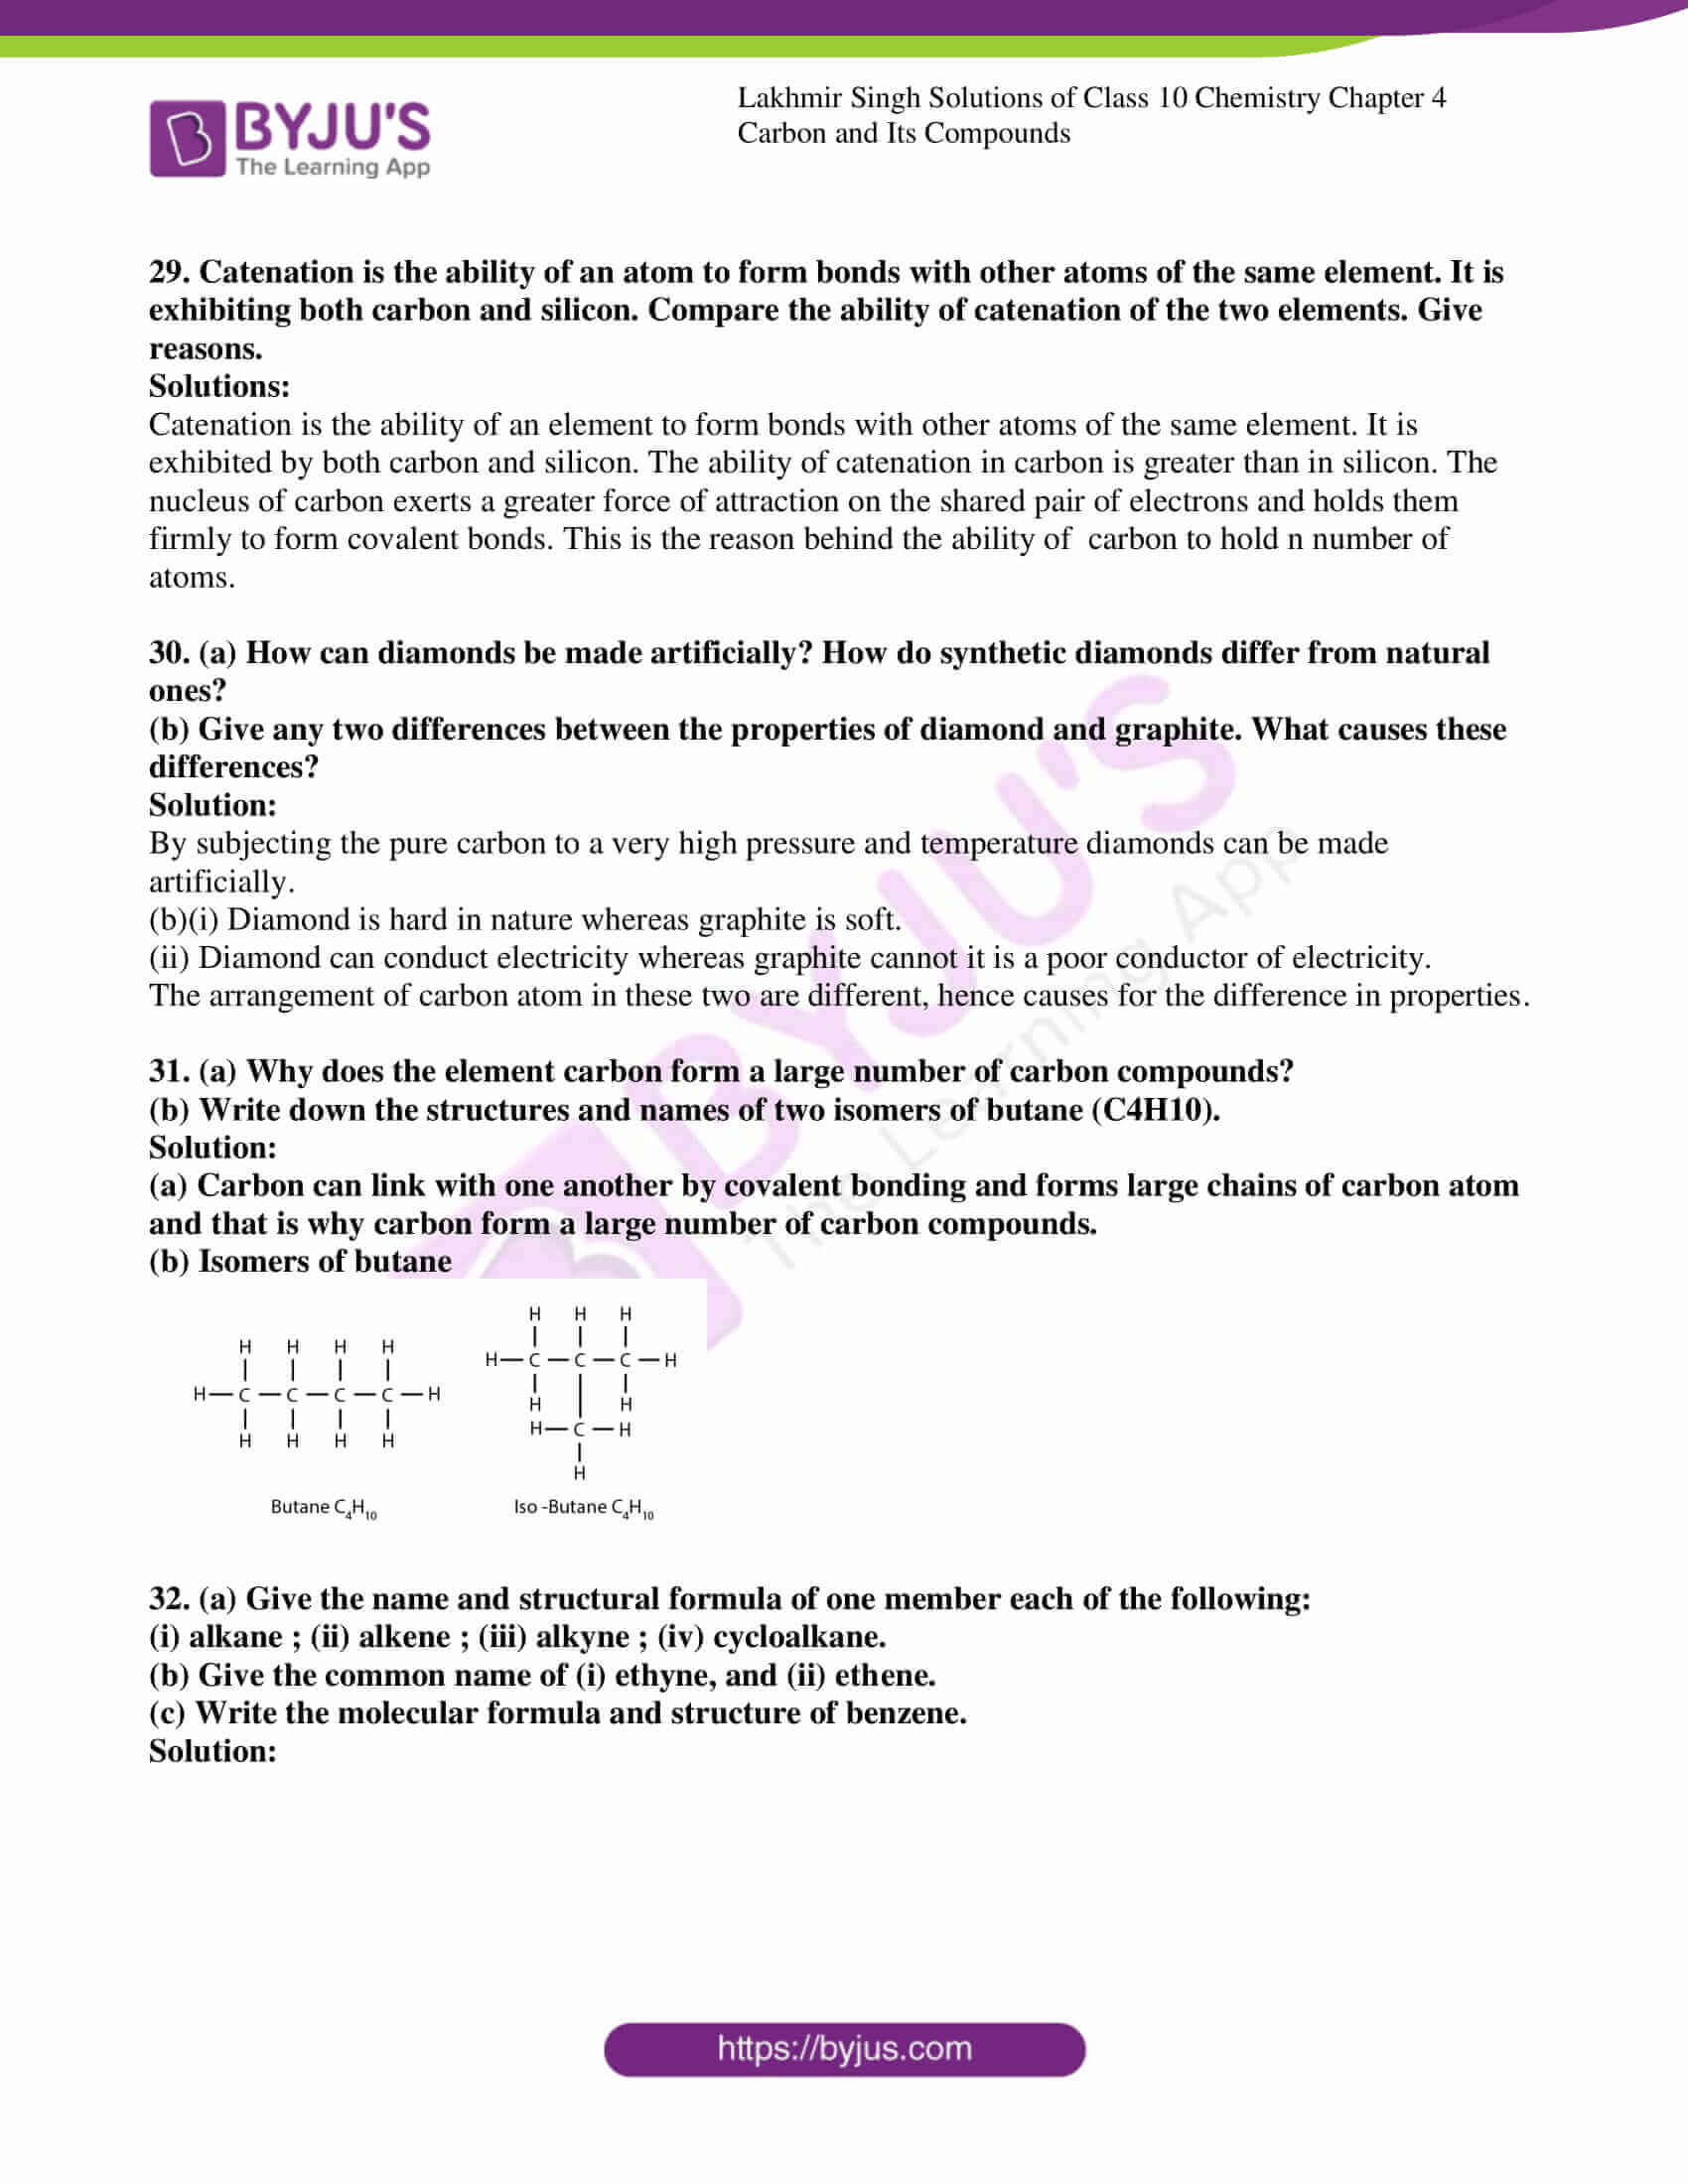 lakhmir singh solutions class 10 chemistry chapter 4 07